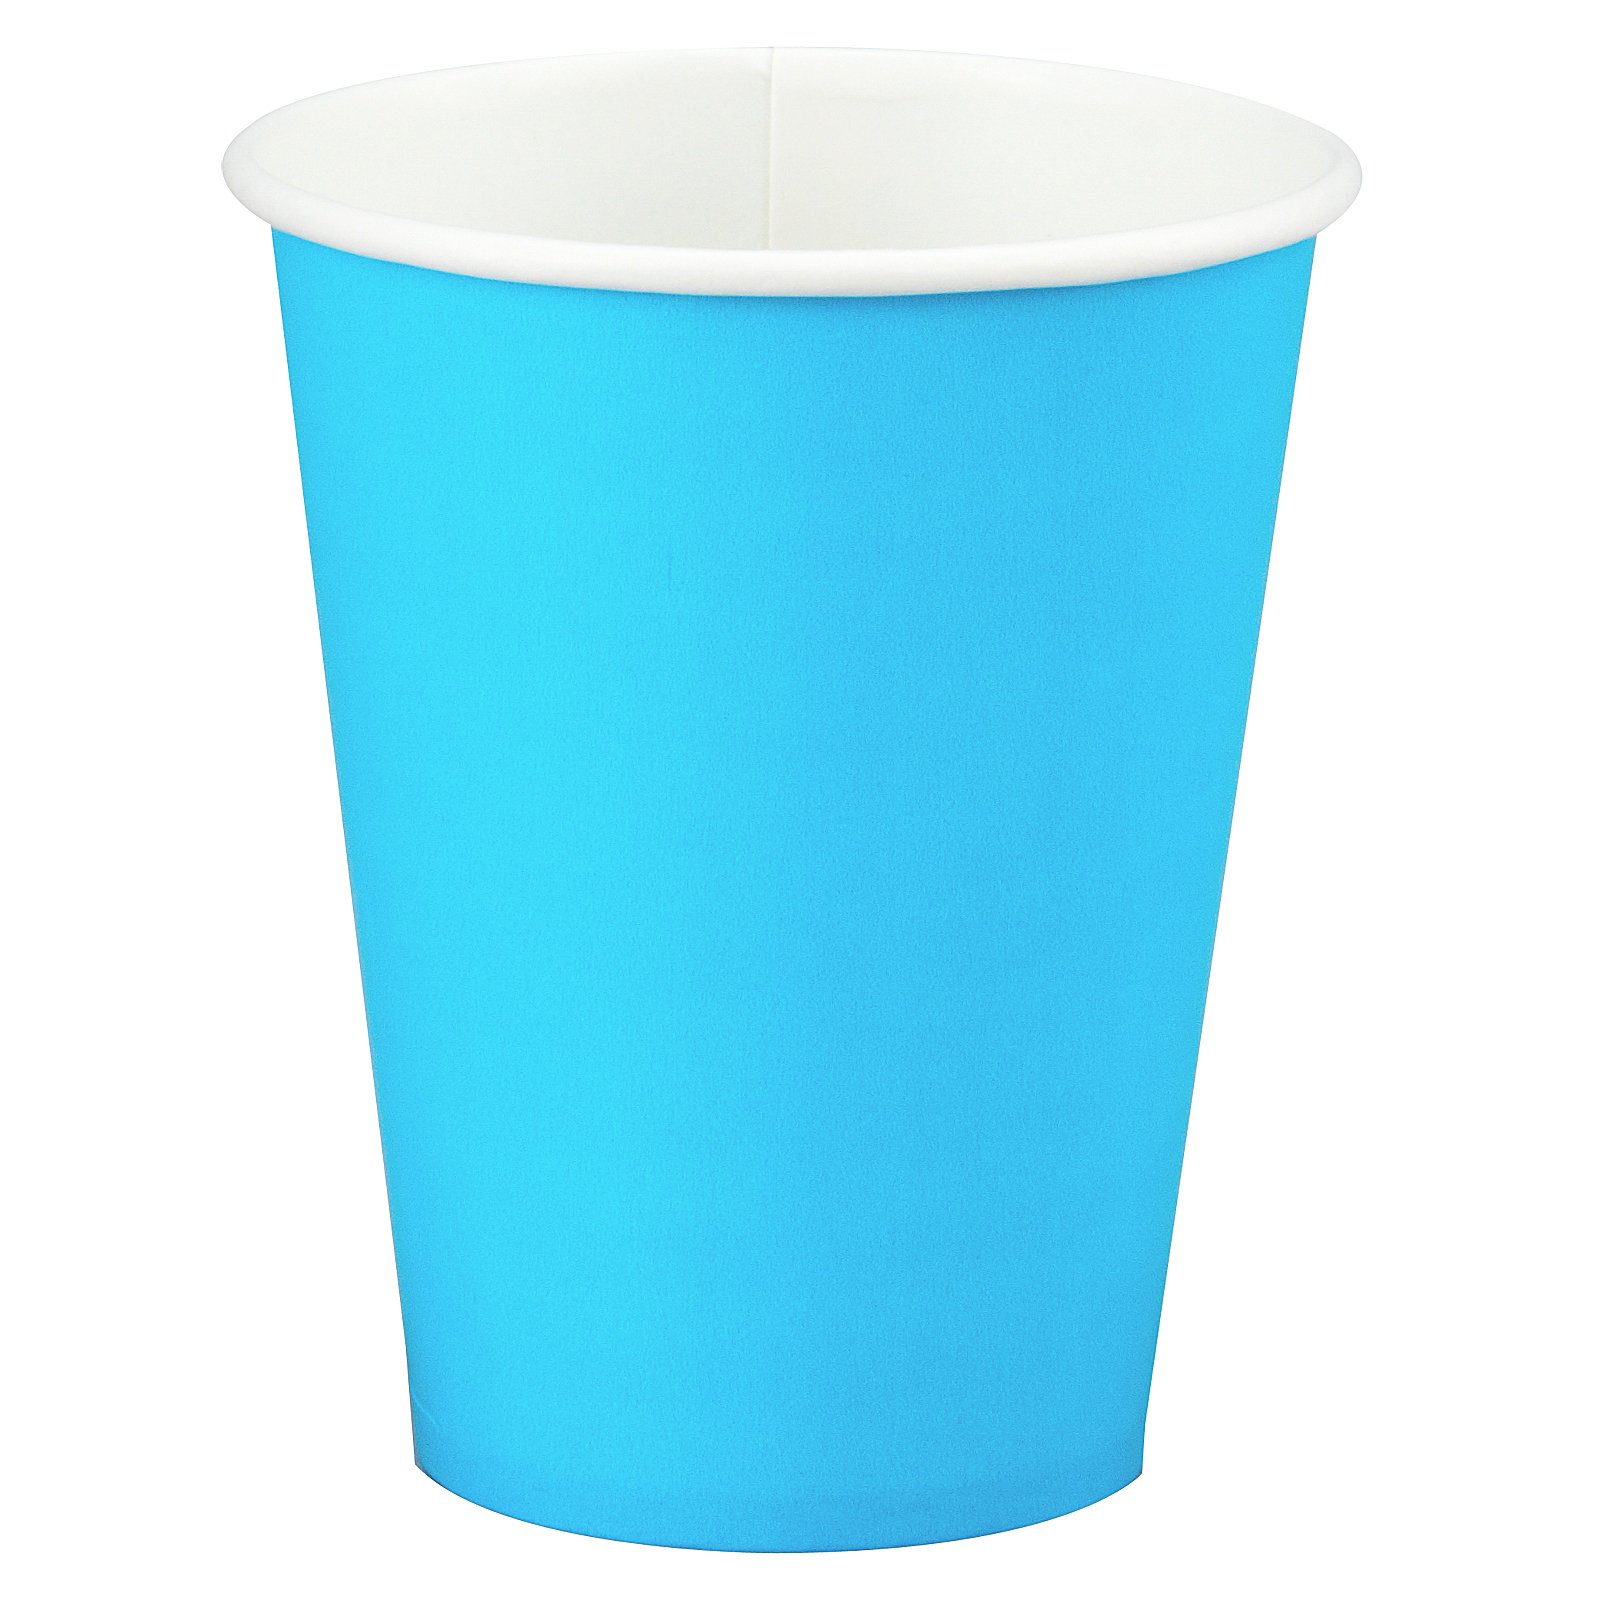 Bermuda Blue (Turquoise) 9 oz. Paper Cups (24 count)